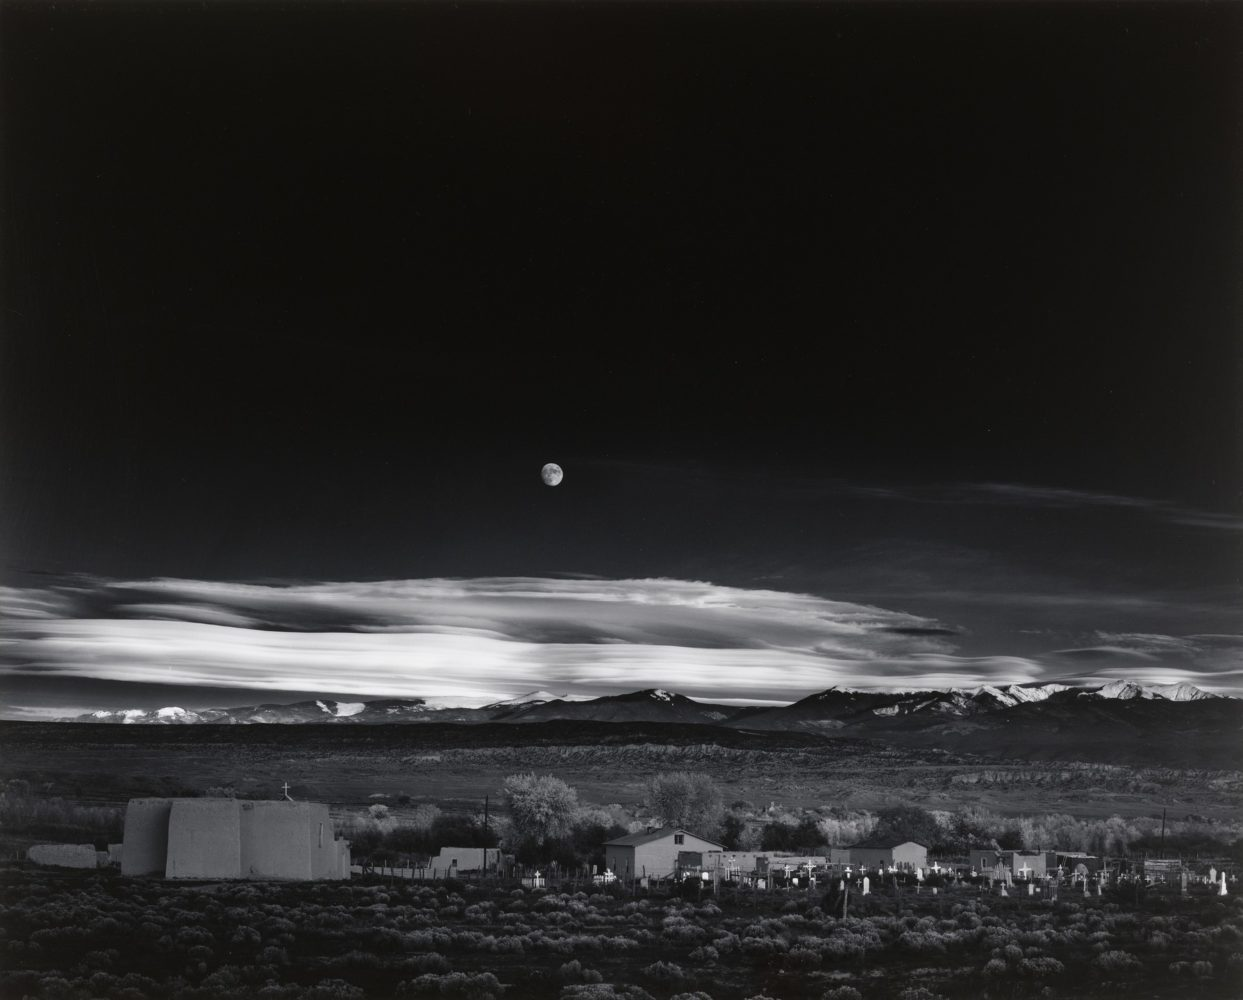 Ansel Adams, Moonrise, Hernandez, NM, 1941, gelatin silver print, 16 x 20 inches, signed in pencil, recto, studio stamp, verso, framed, price on request